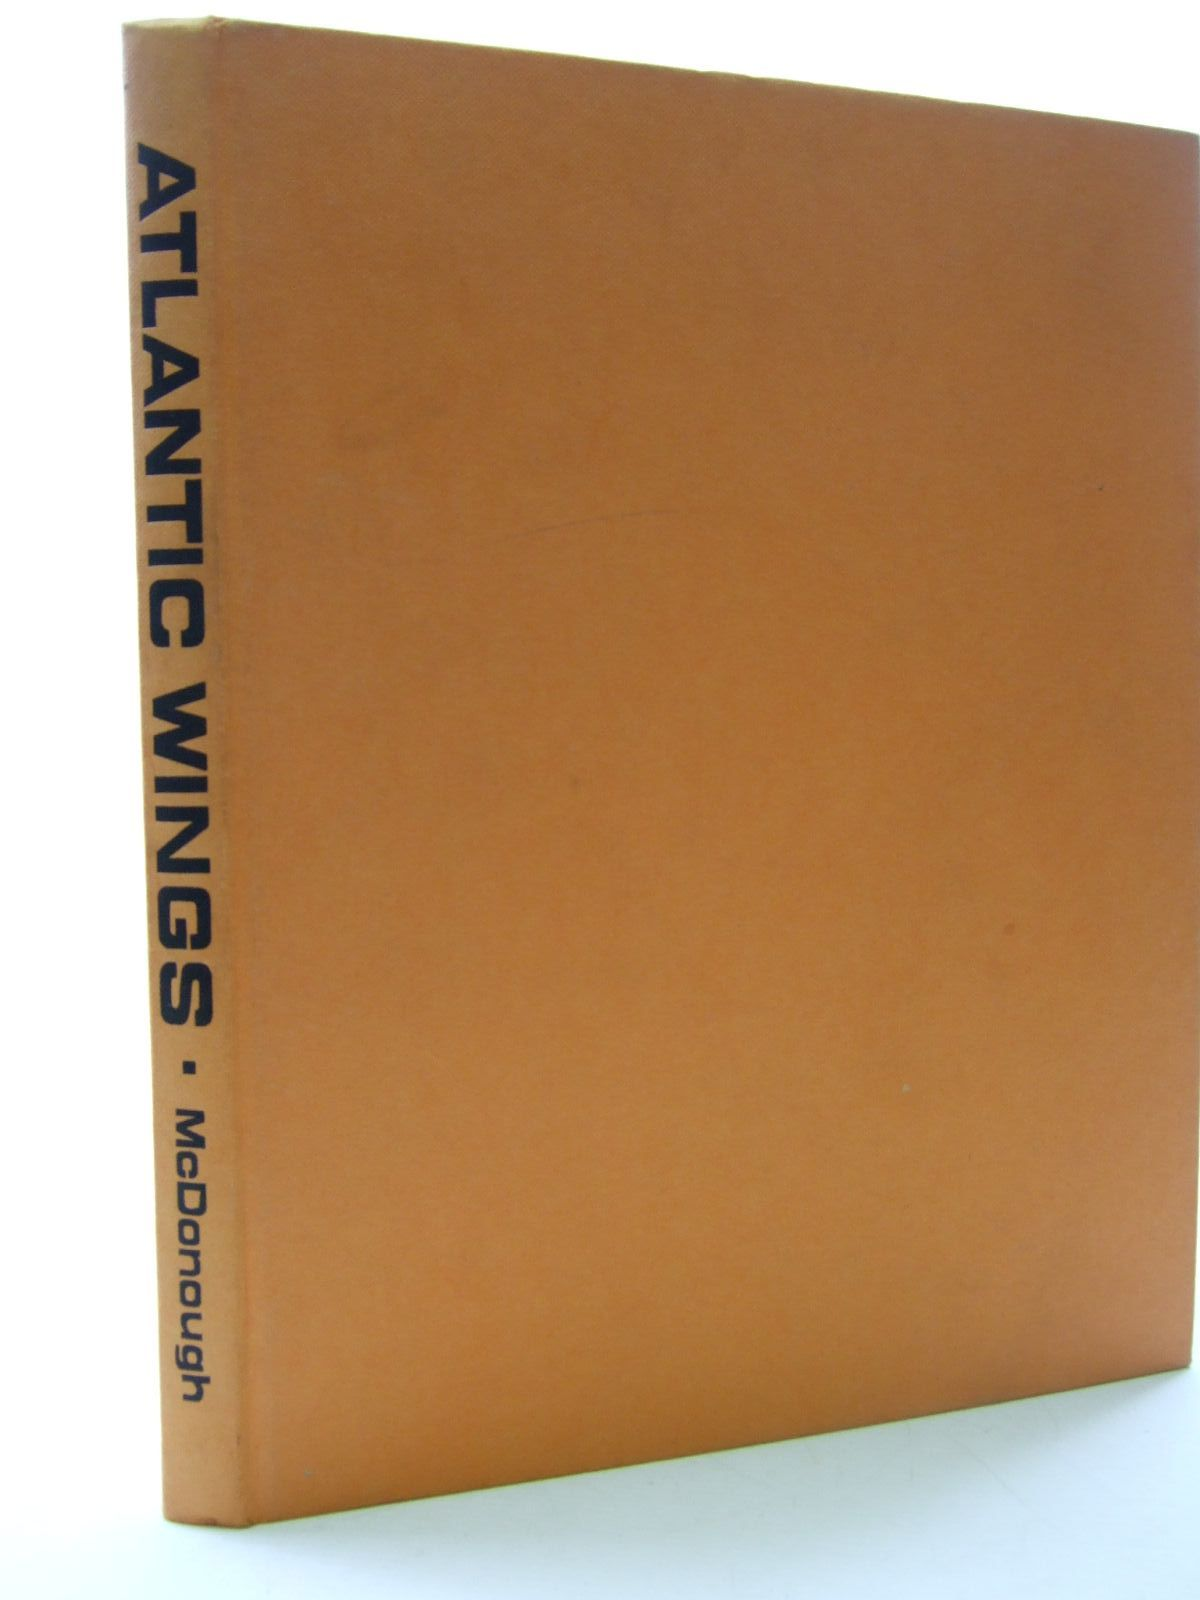 Photo of ATLANTIC WINGS written by McDonough, Kenneth illustrated by McDonough, Kenneth published by Model Aeronautical Press Limited (STOCK CODE: 1707877)  for sale by Stella & Rose's Books